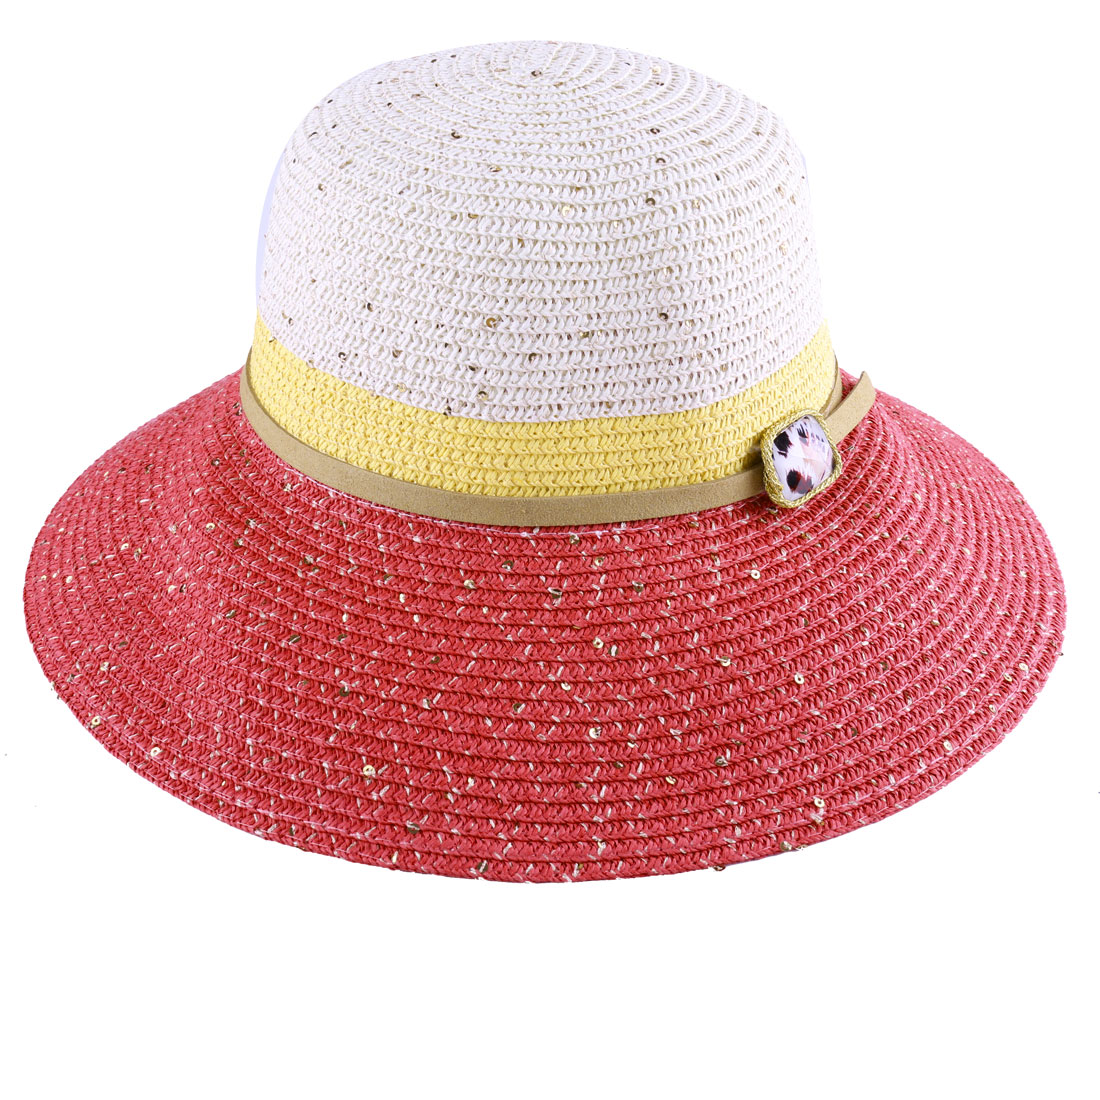 Ladies Wide Brim Plastic Diamond Decor Color Block Hat Coral Pink Cream